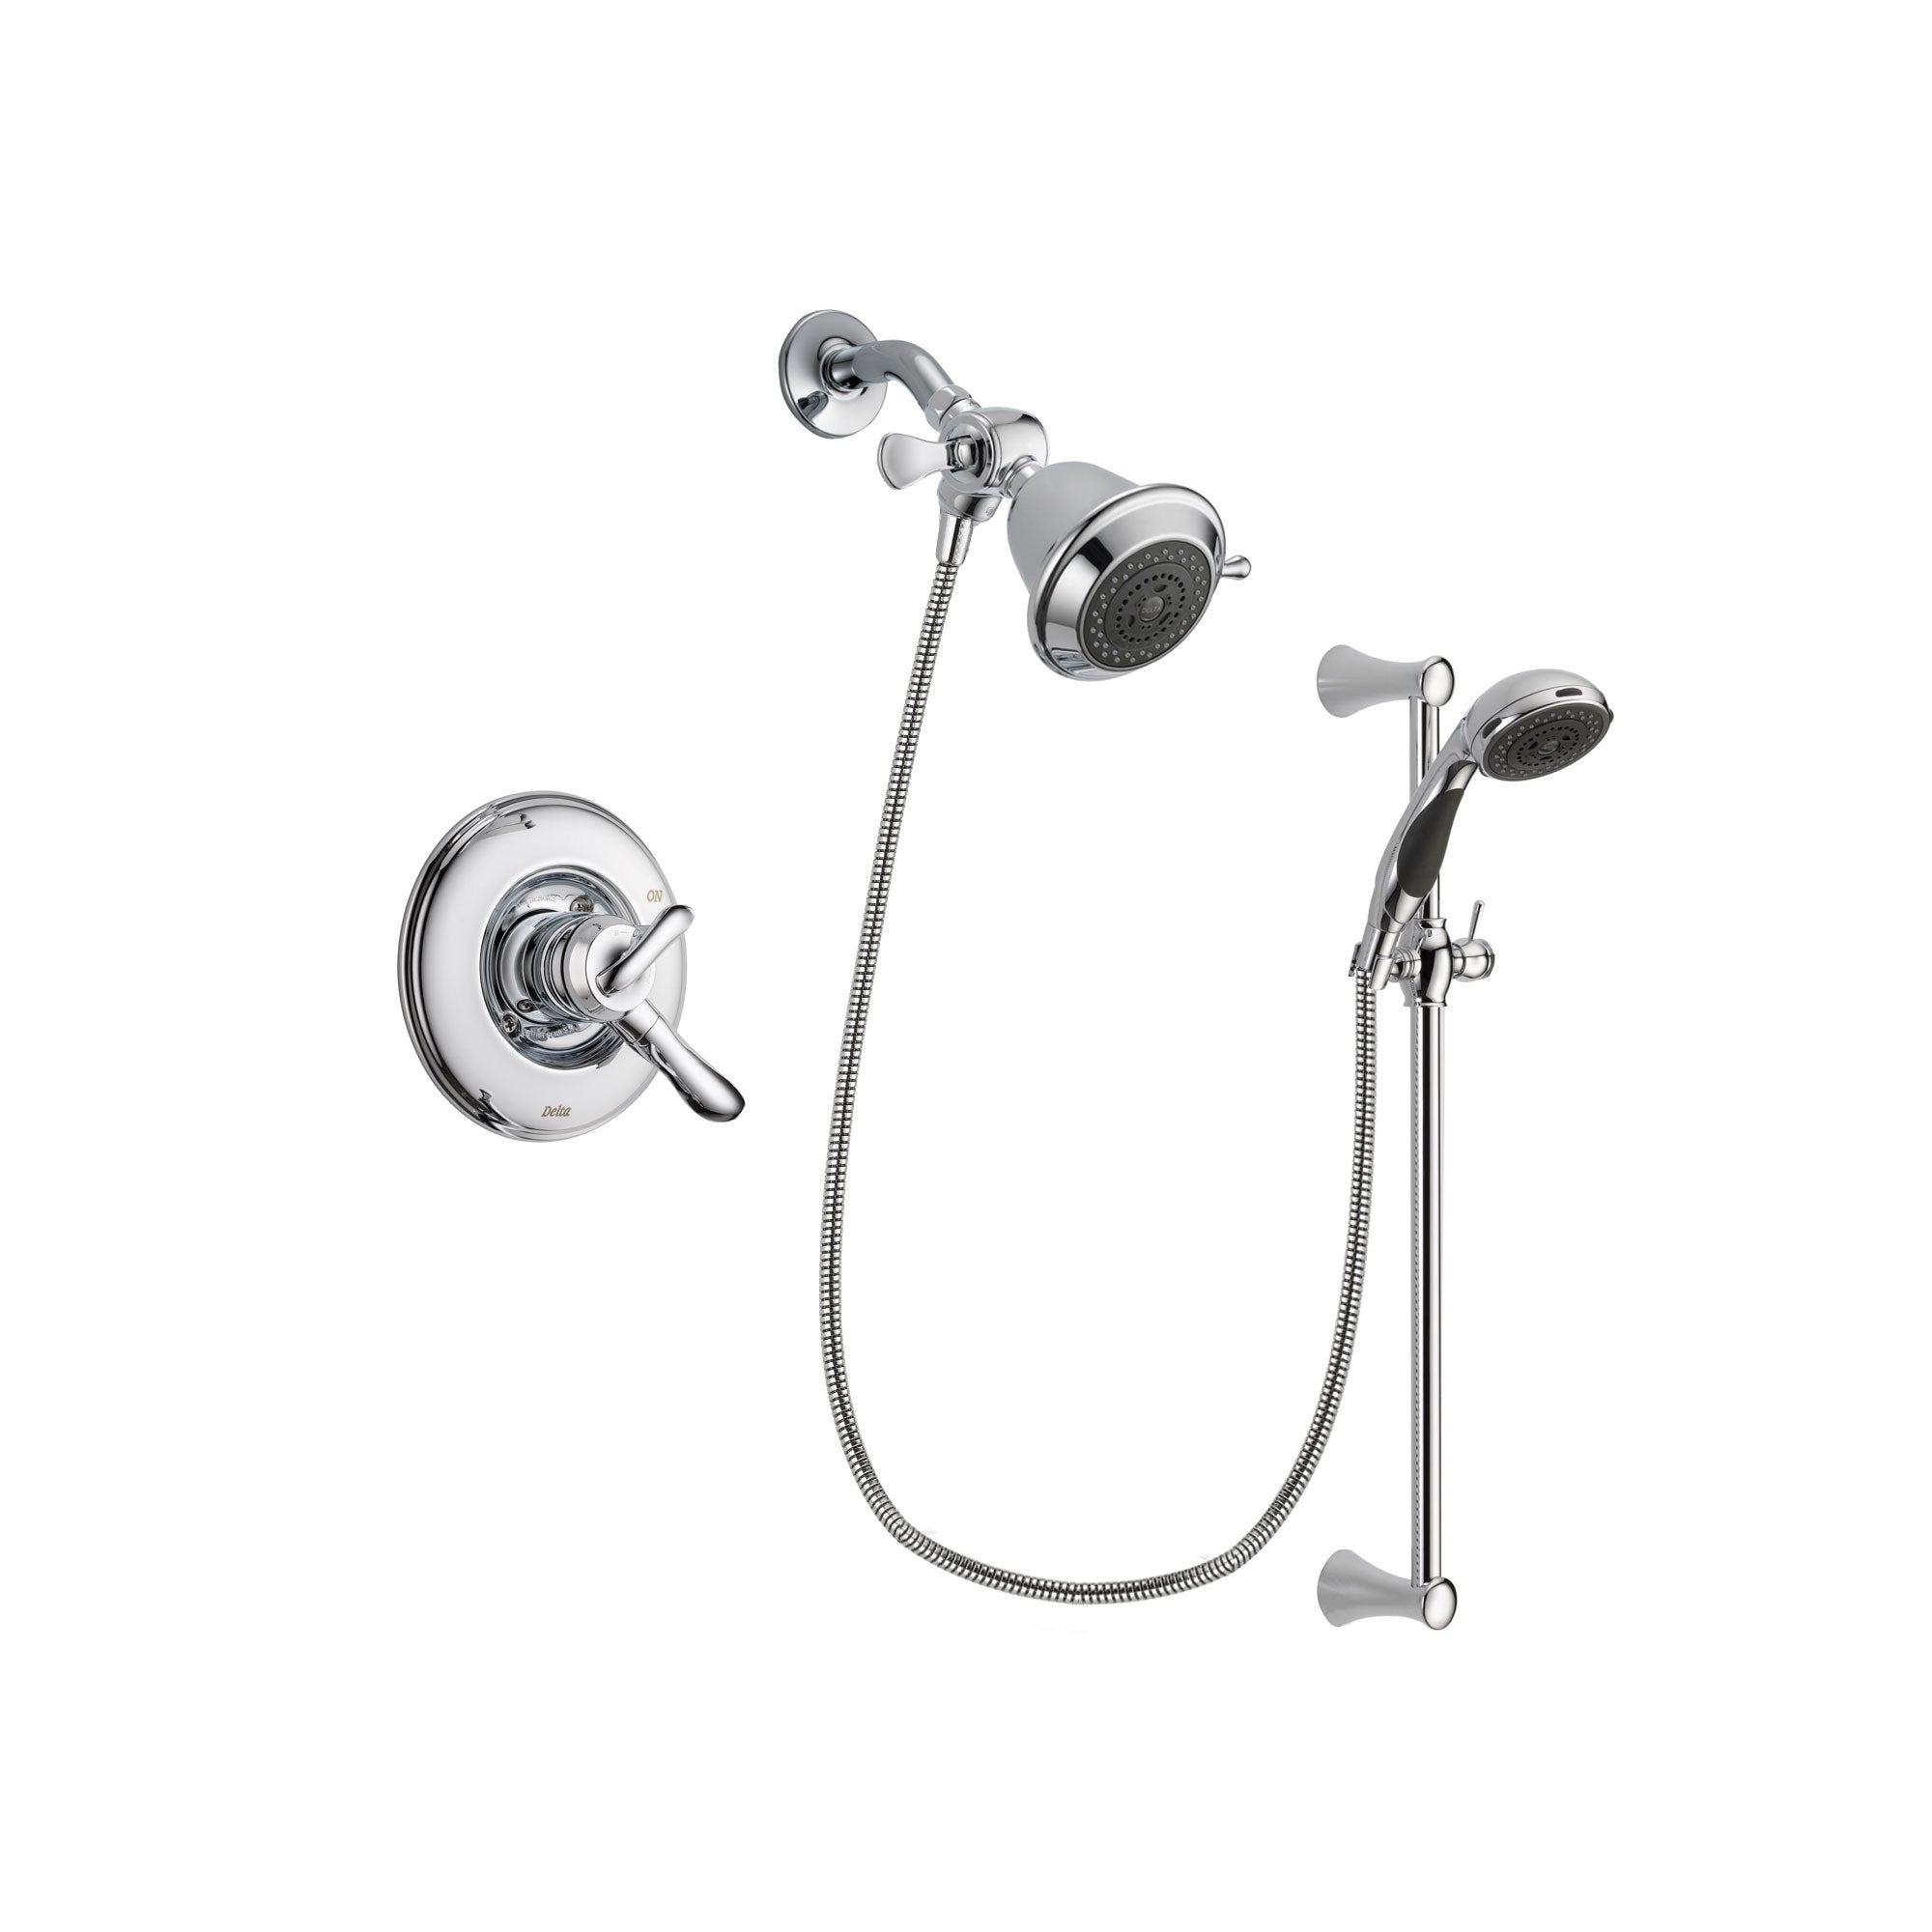 Delta Linden Chrome Shower Faucet System w/ Shower Head and Hand Shower DSP0728V